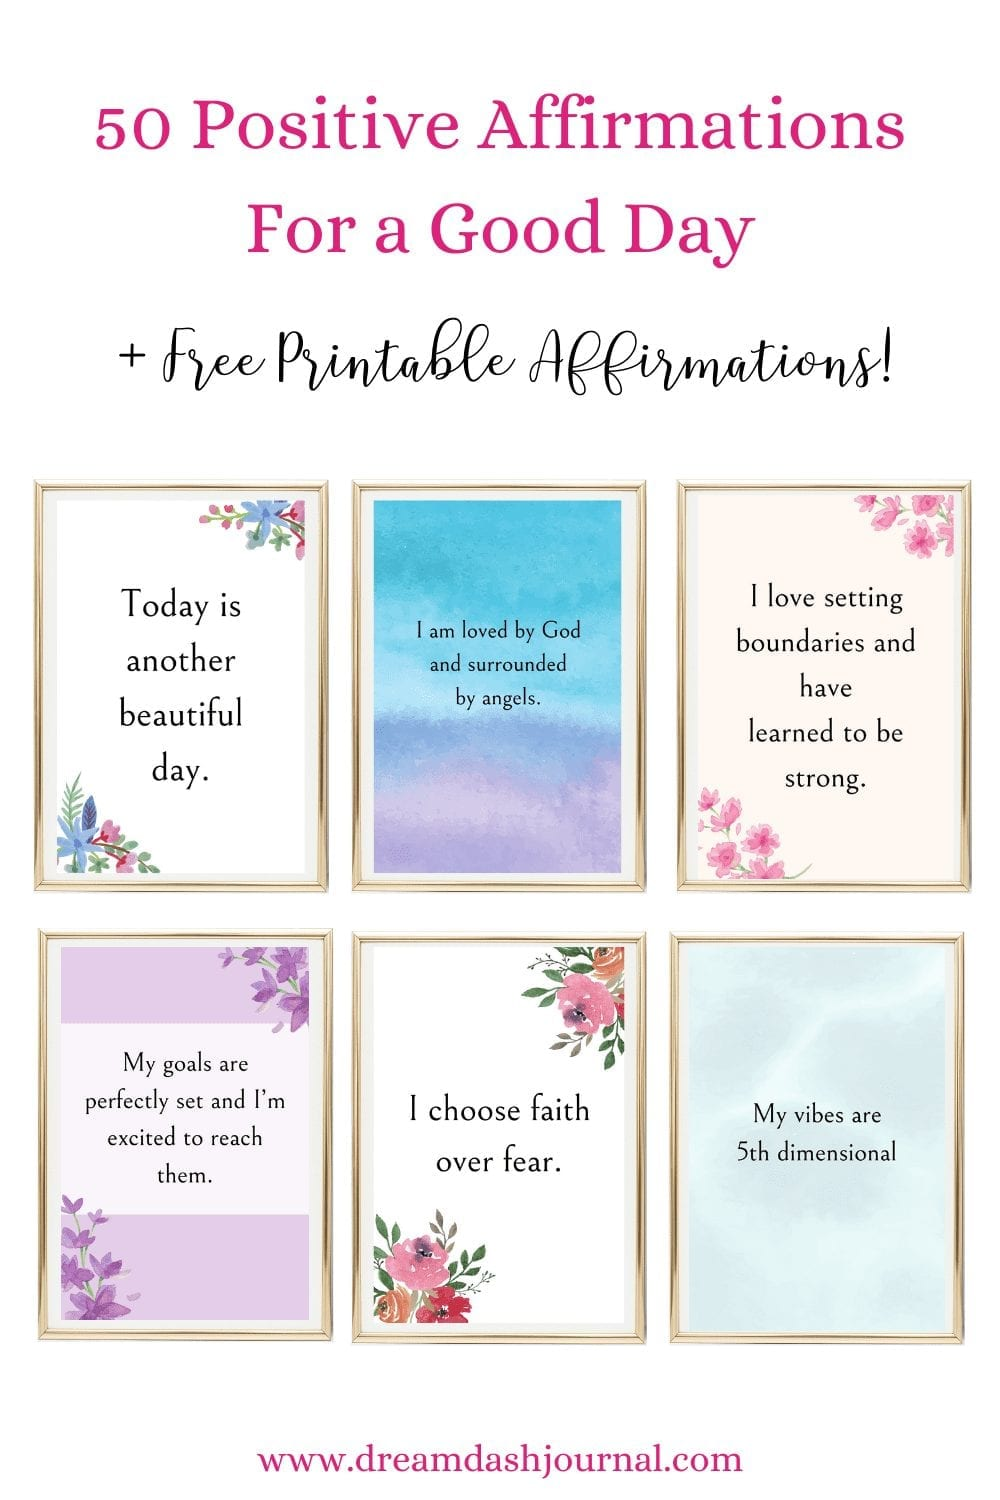 50 Positive Affirmations For A Good Day Plus Free Printable Affirmations